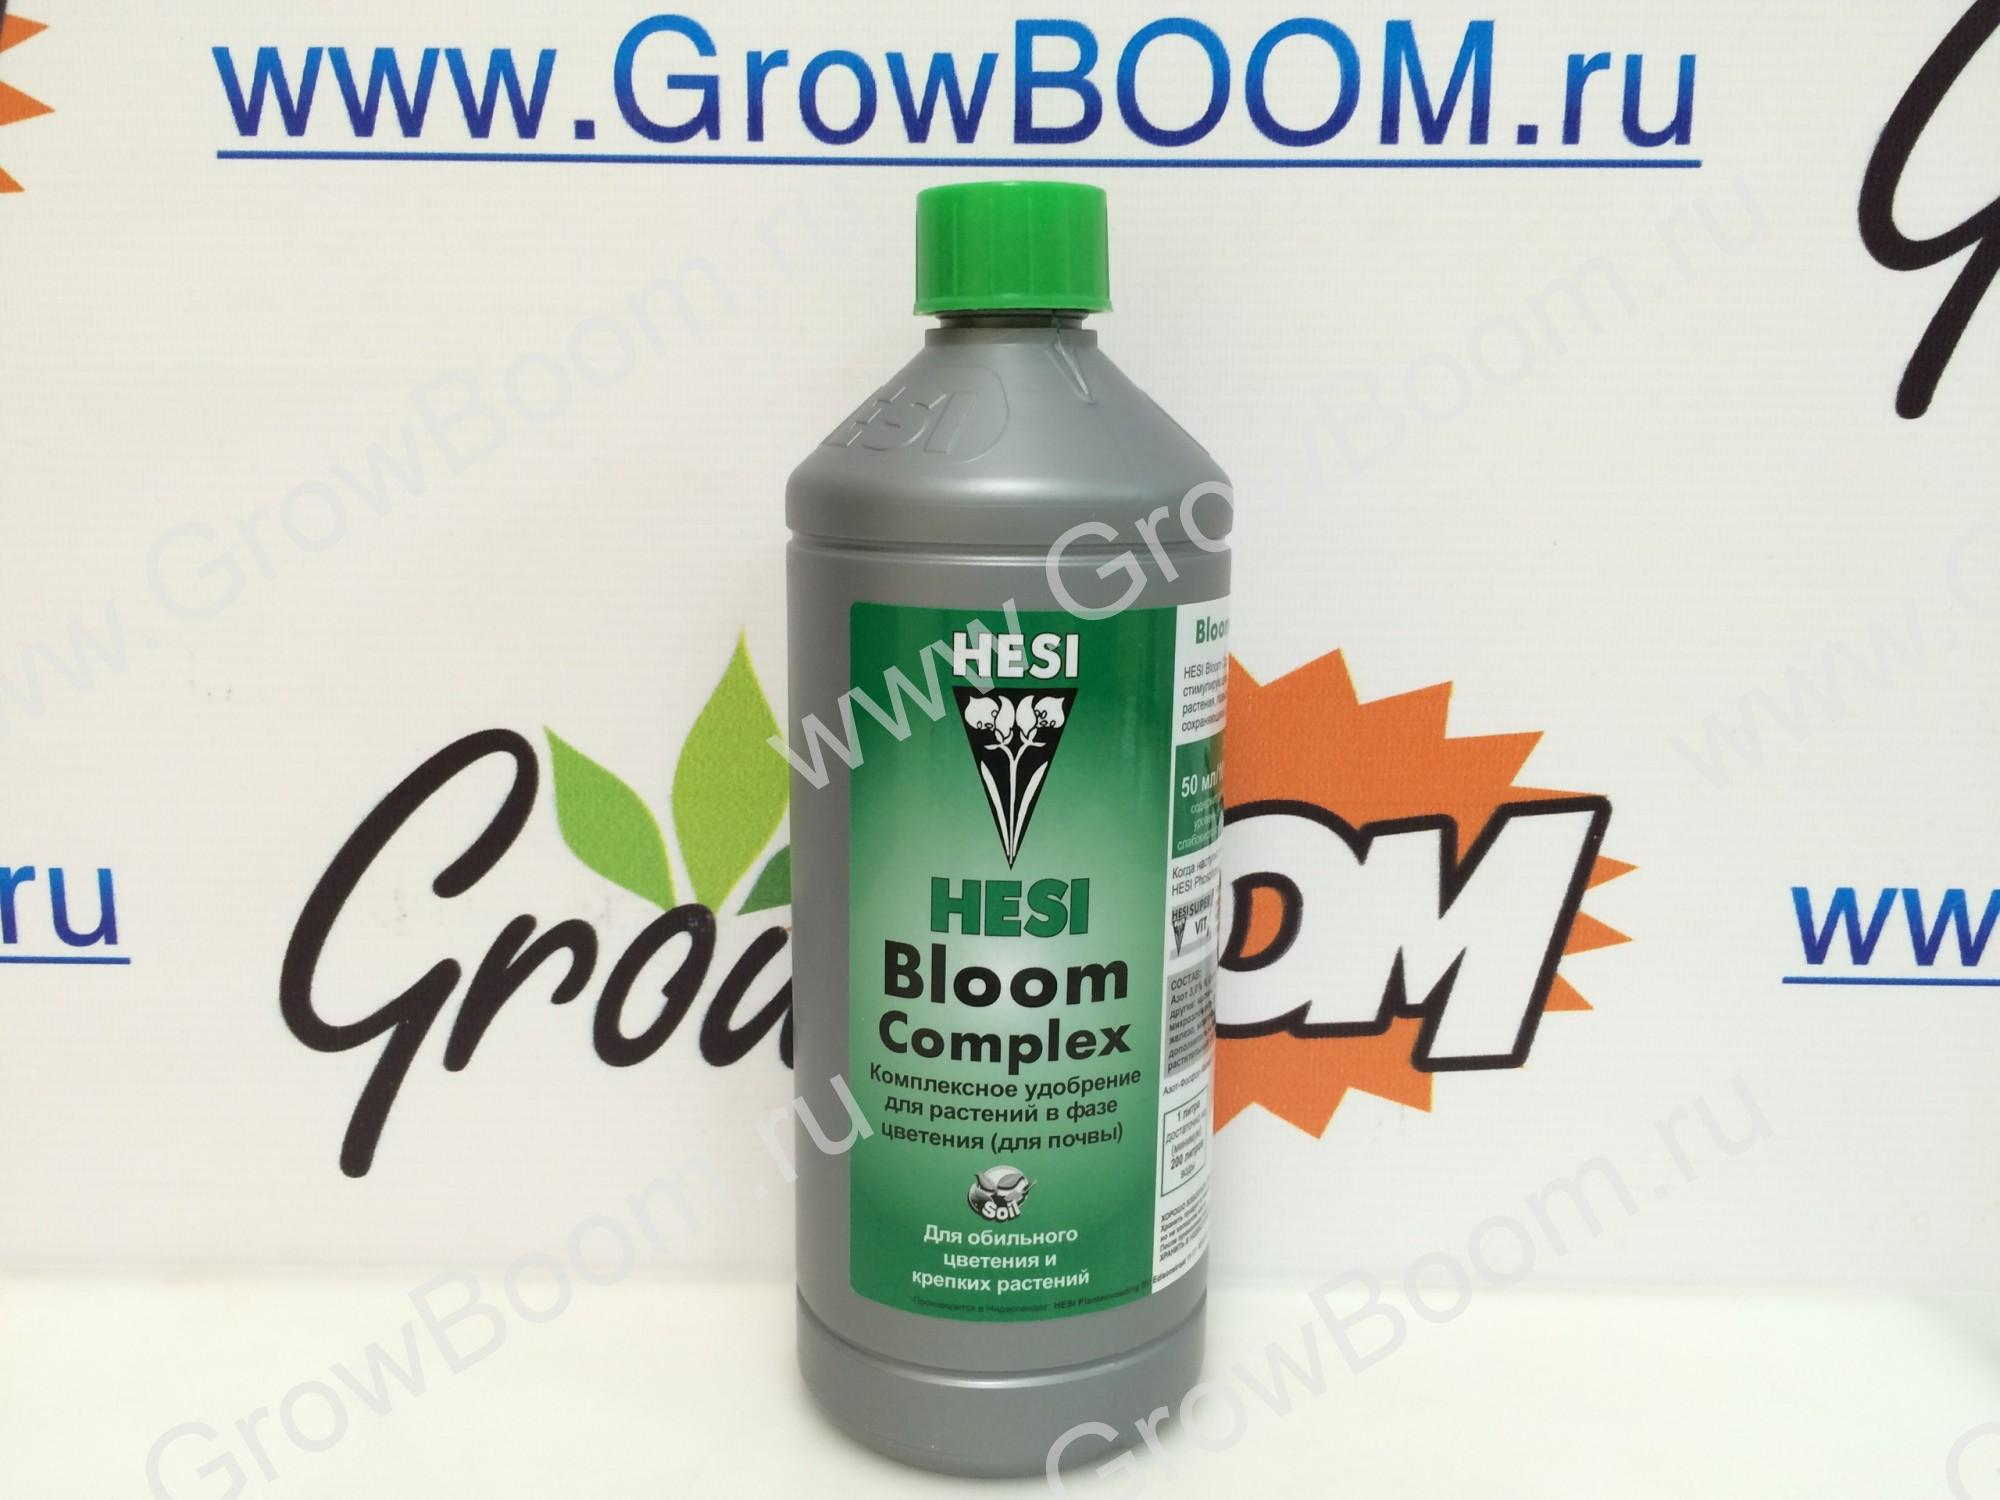 Удобрение Hesi Bloom Complex